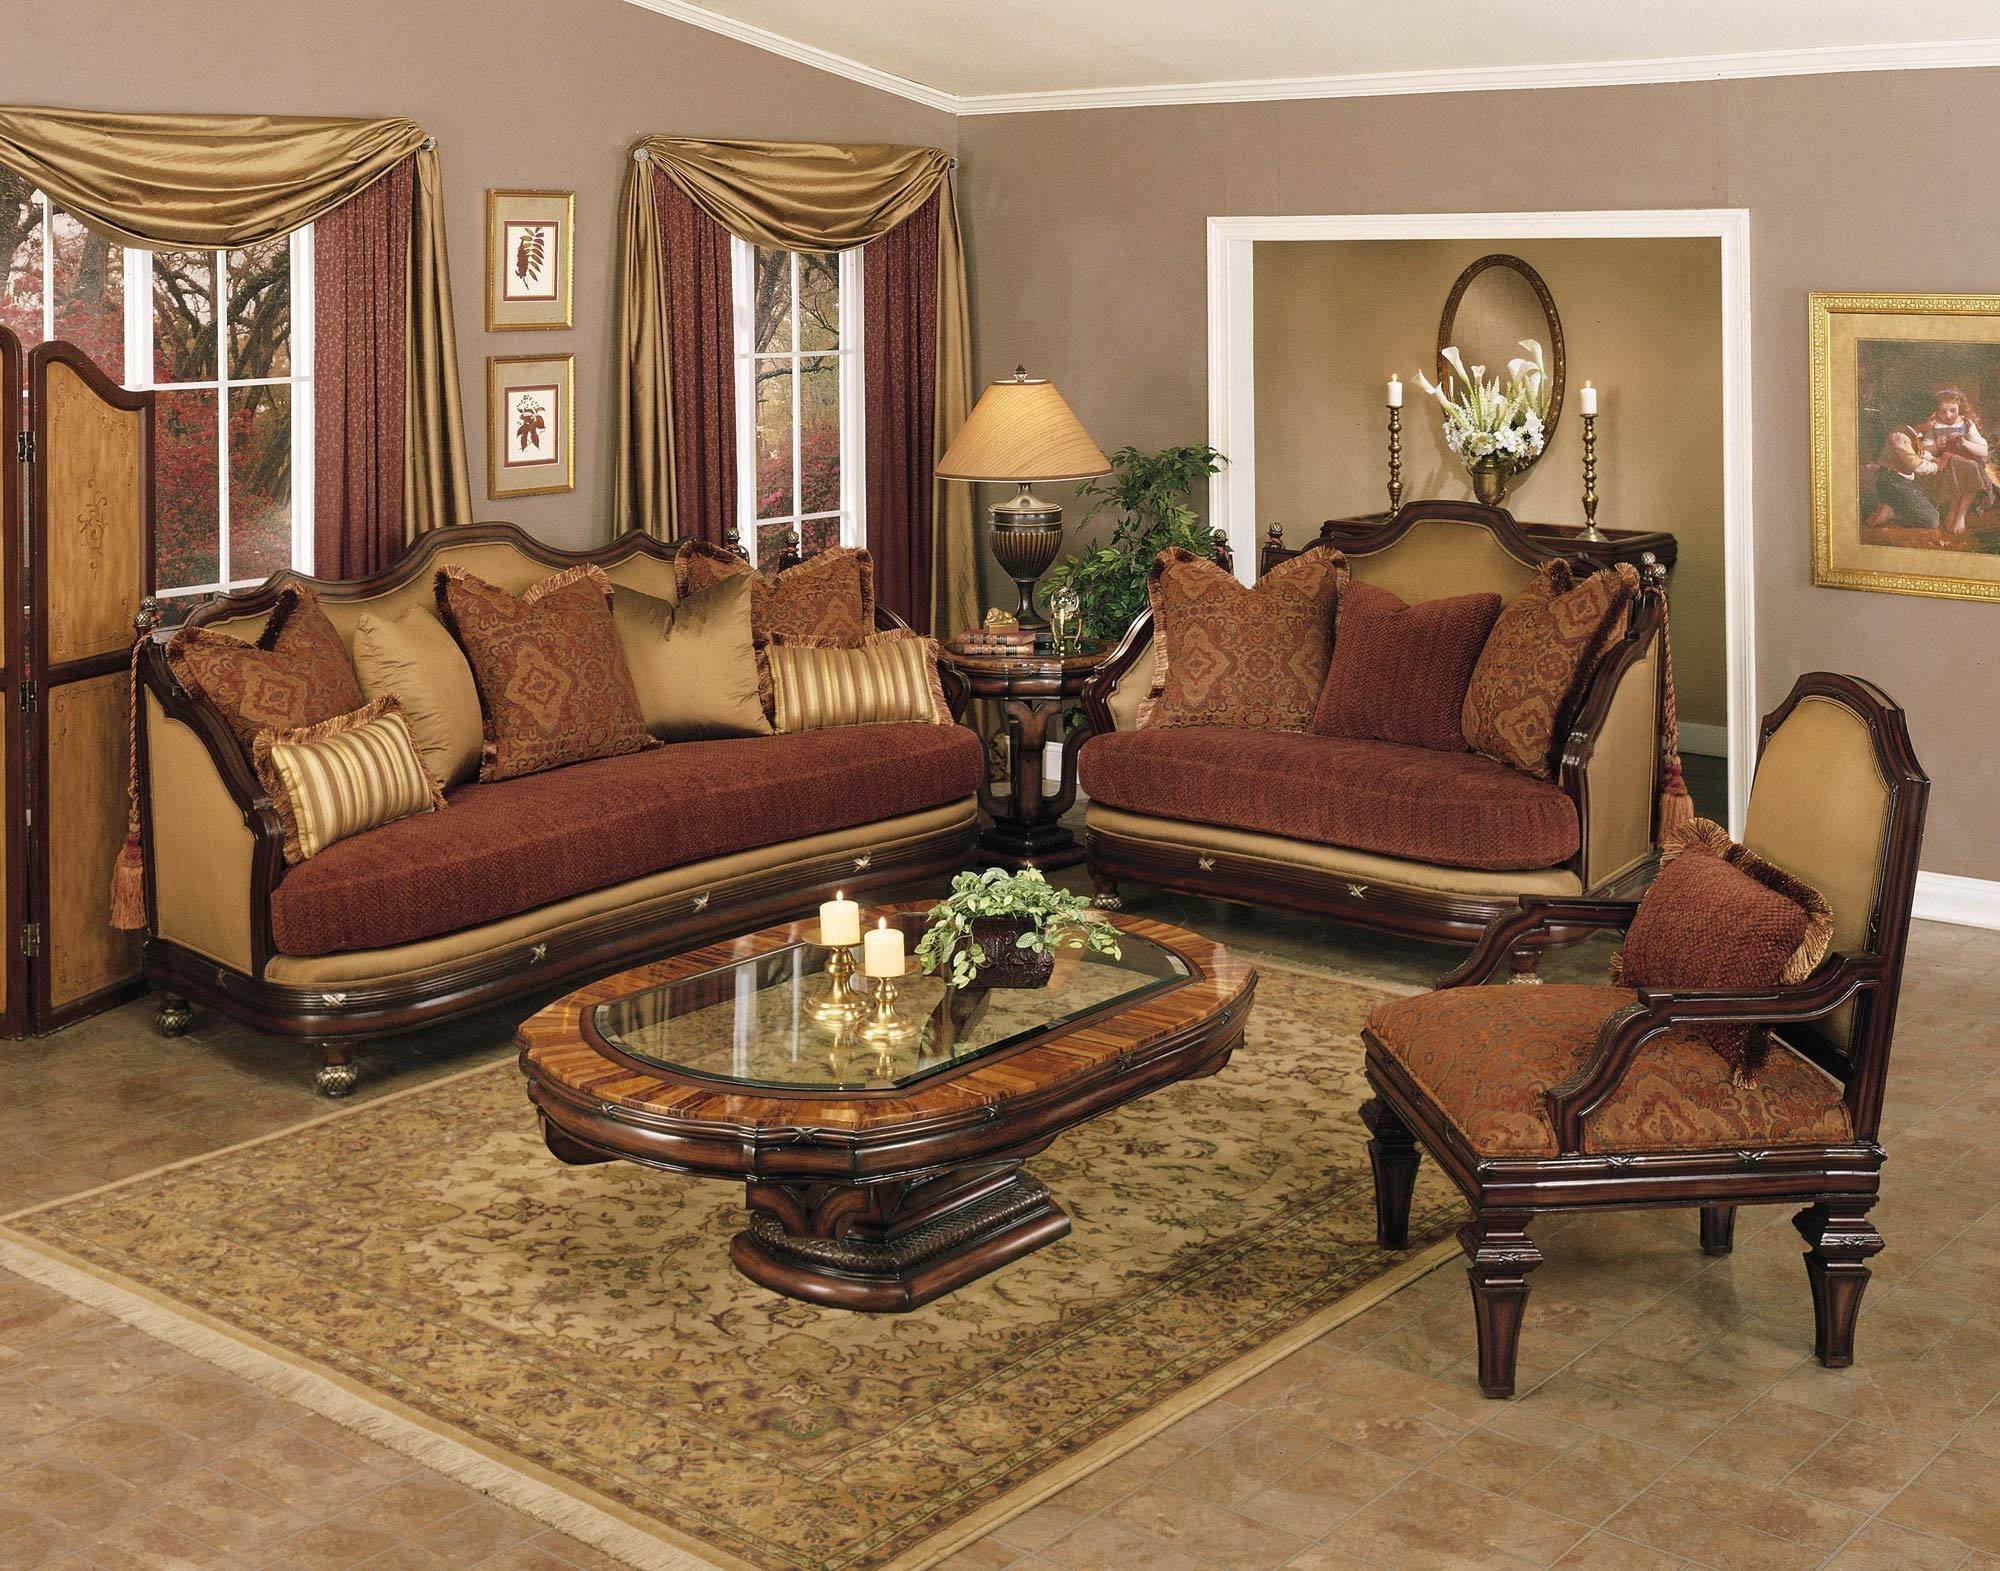 Traditional Living Room Sets Lovely Traditional Fabric Covered Living Room Set Living Room Furniture Living Room Sets sofas